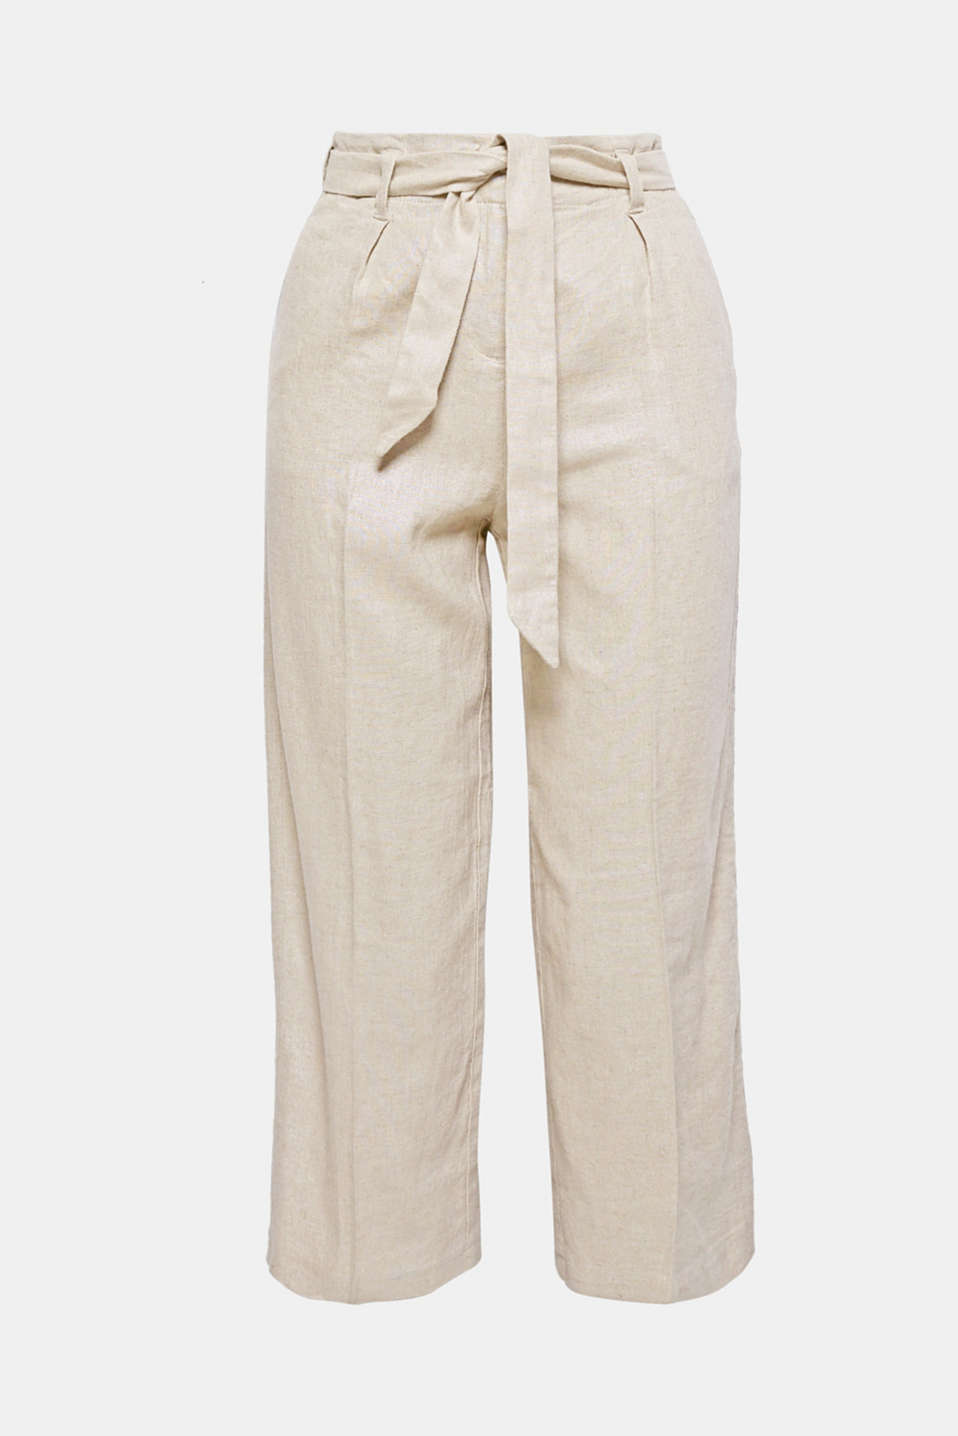 One of the brand new trouser designs: this style features a cropped wide leg, a high-rise waist and a tie-around belt in elegant, glittering blended linen!